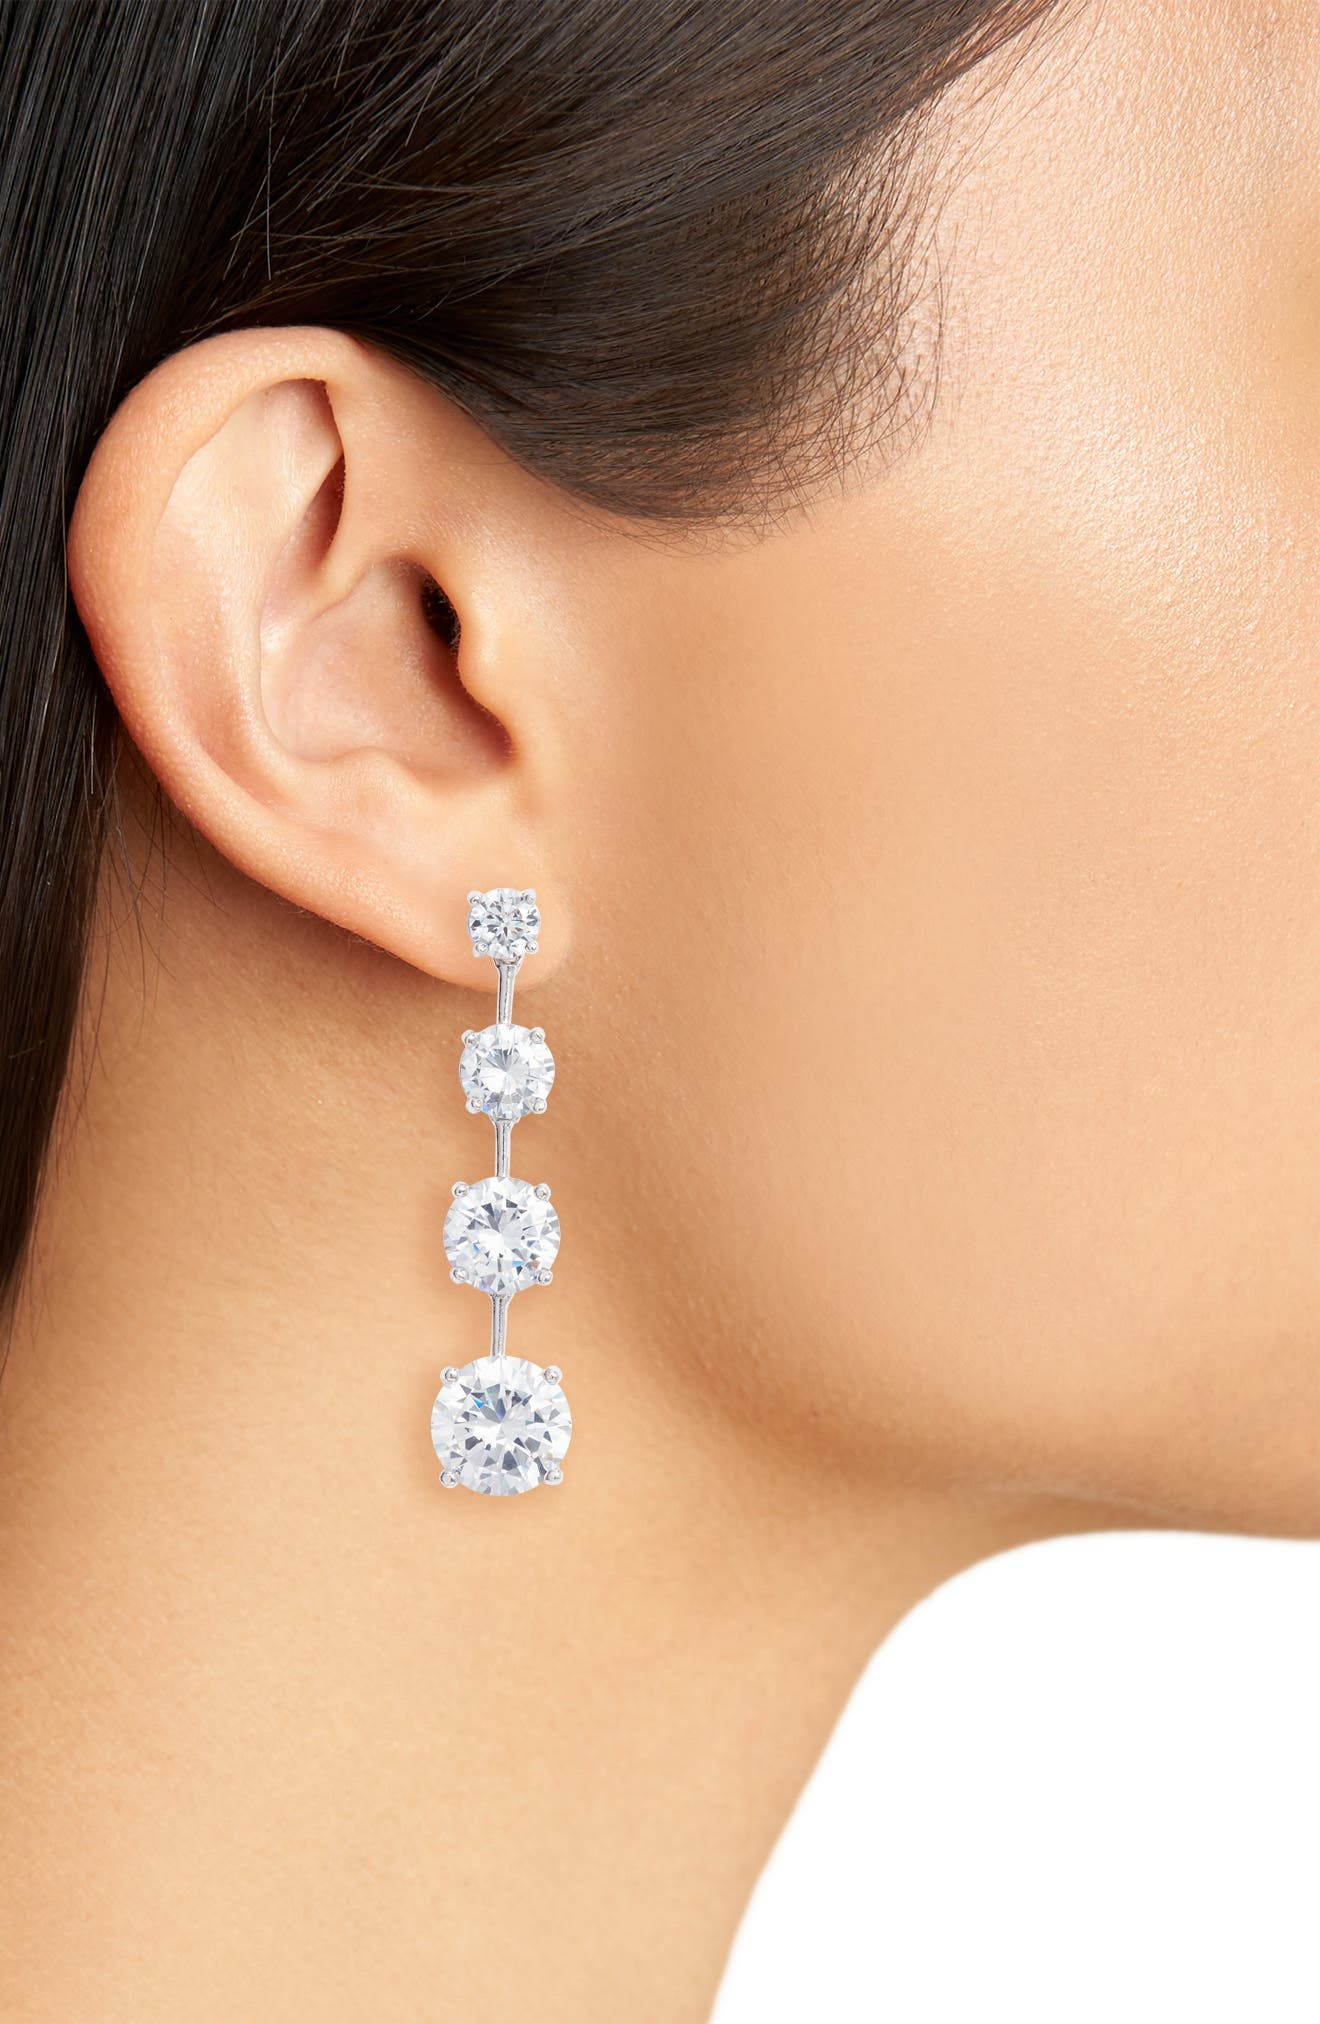 Graduated Cubic Zirconia Linear Drop Earrings,                             Alternate thumbnail 2, color,                             Silver/ White Cz